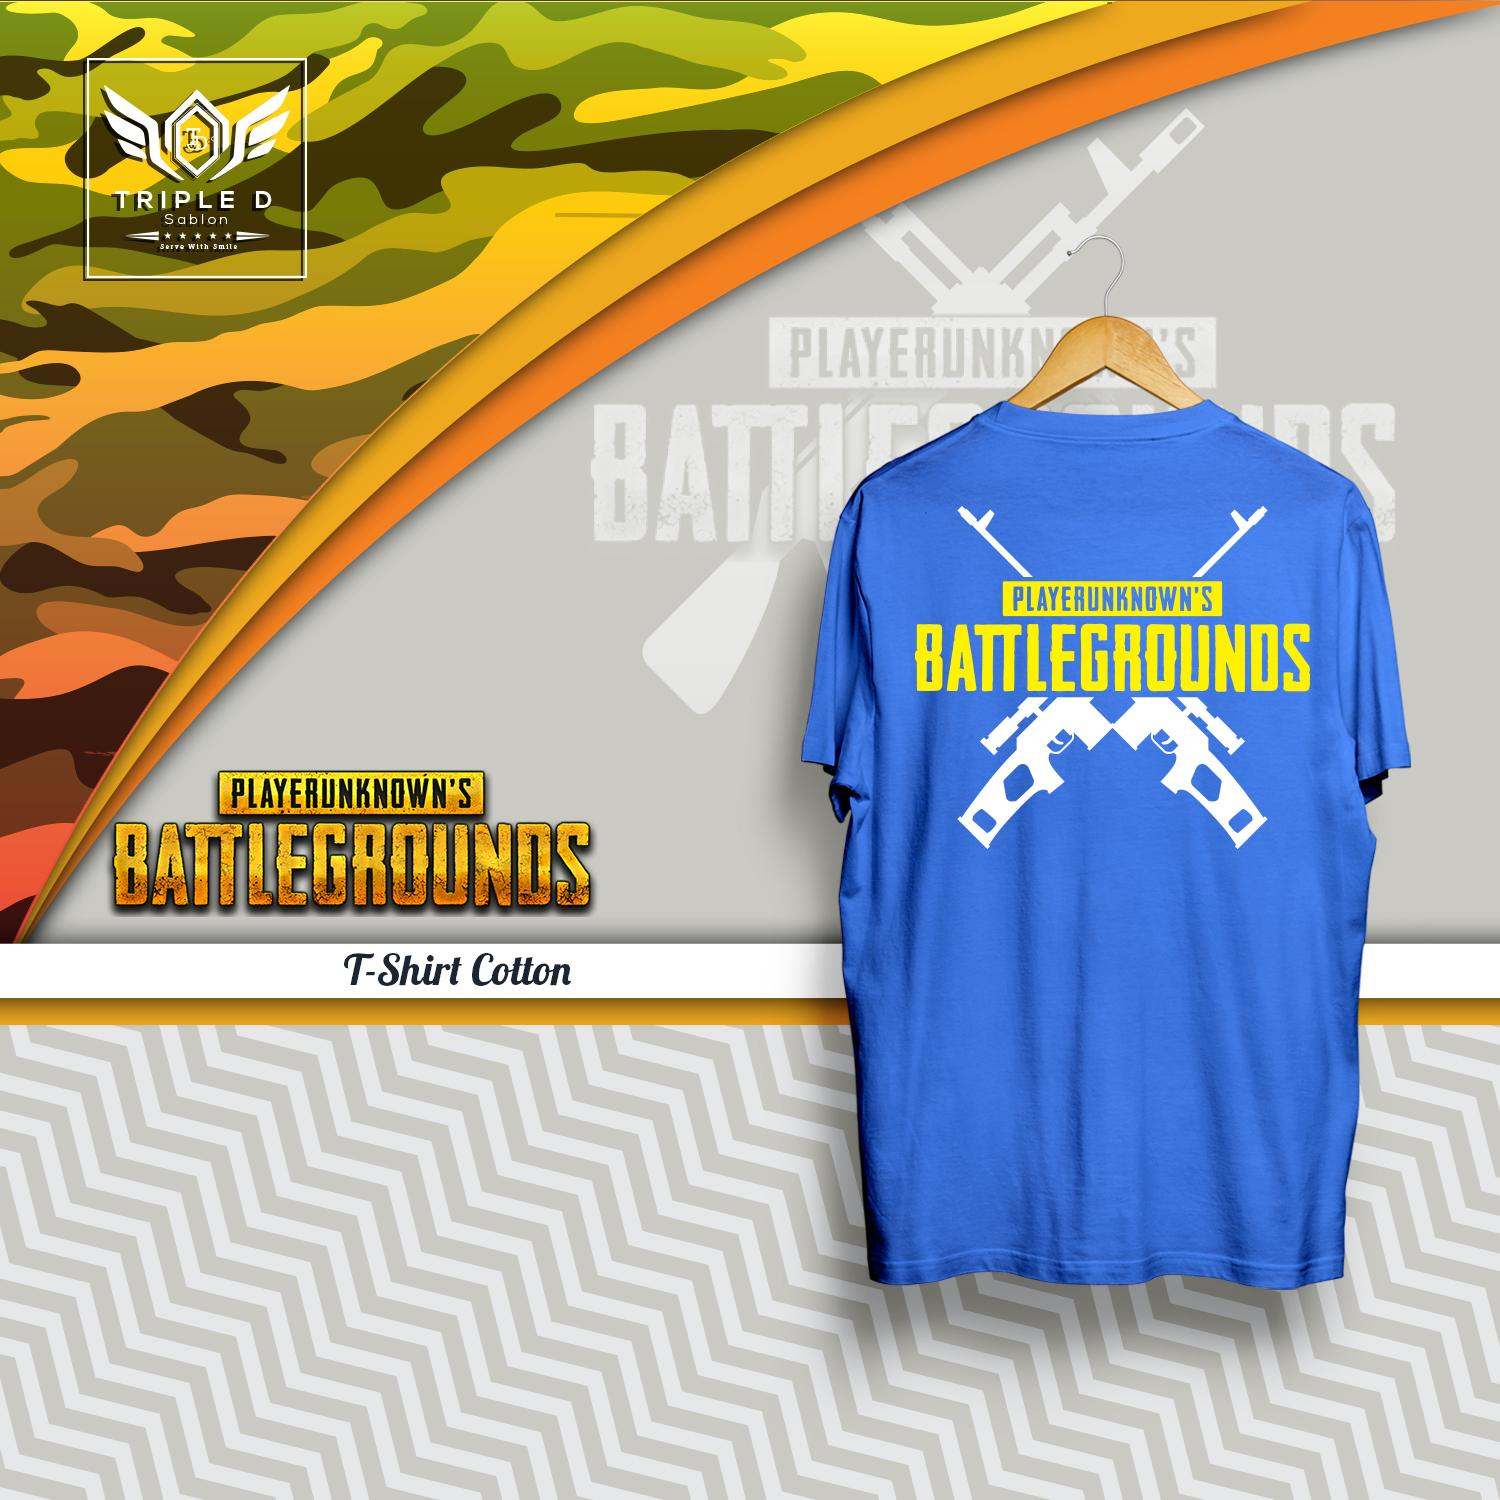 Kaos Distro pria wanita Games player unknown battlegrounds Triple D